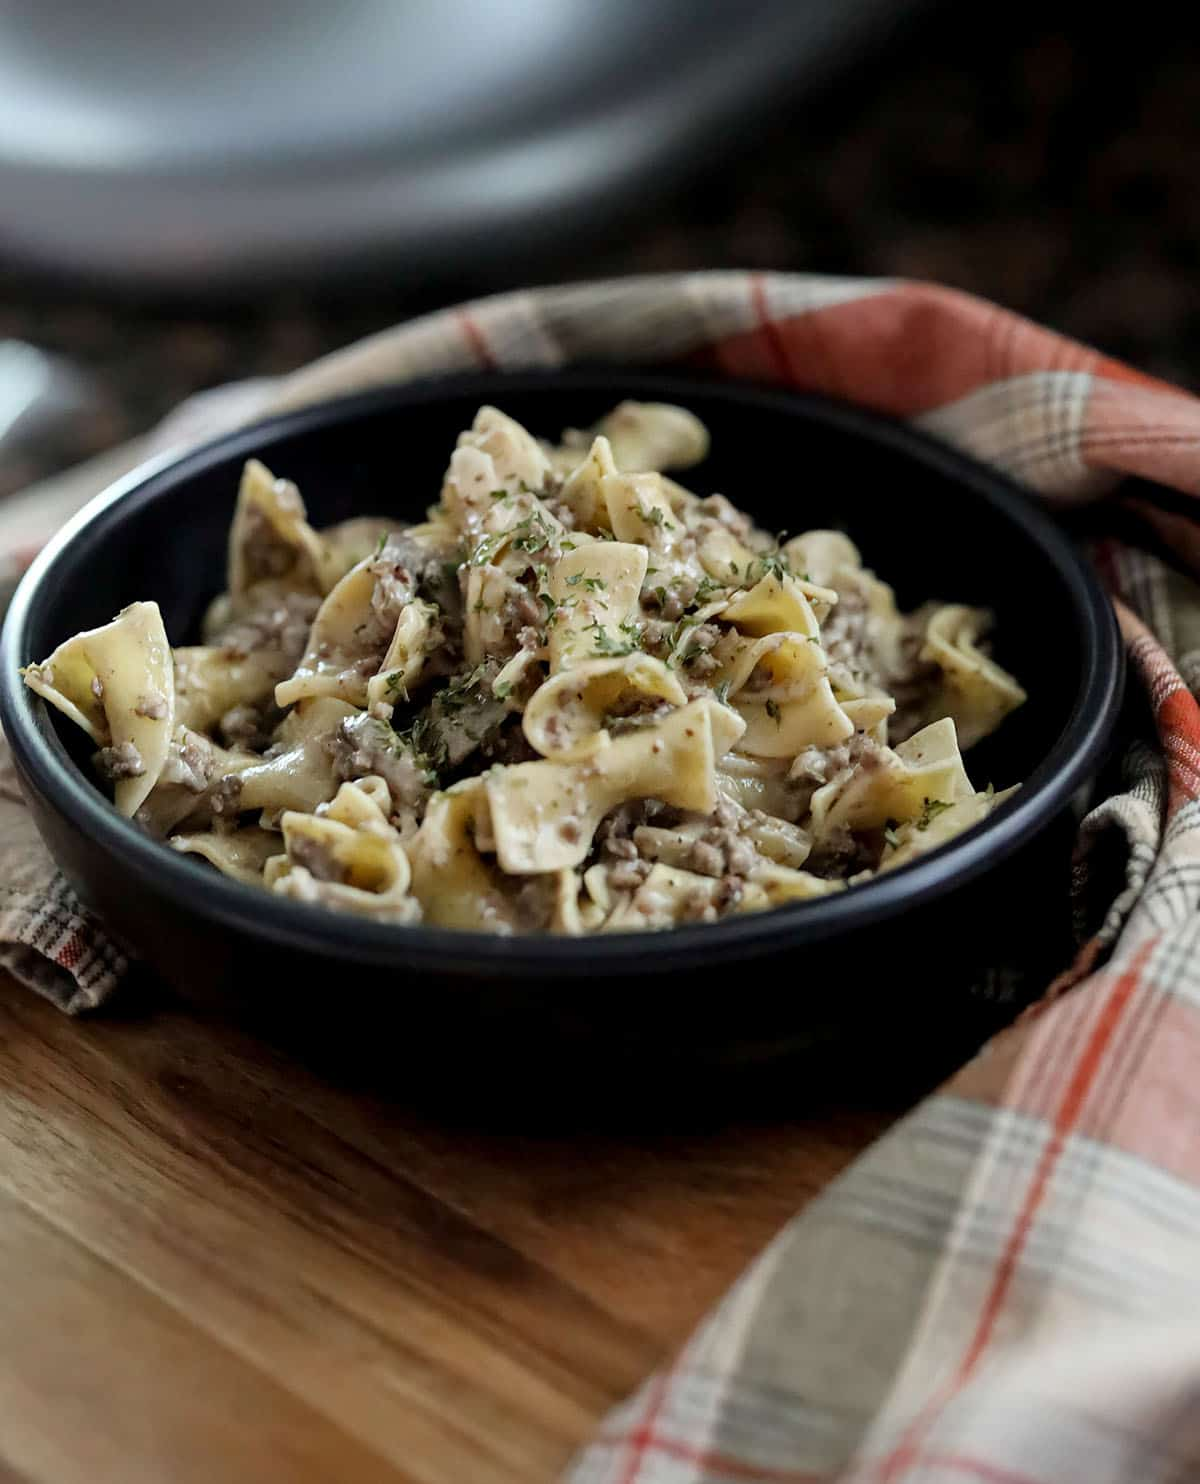 cooked stroganoff in black bowl with red plaid napkin